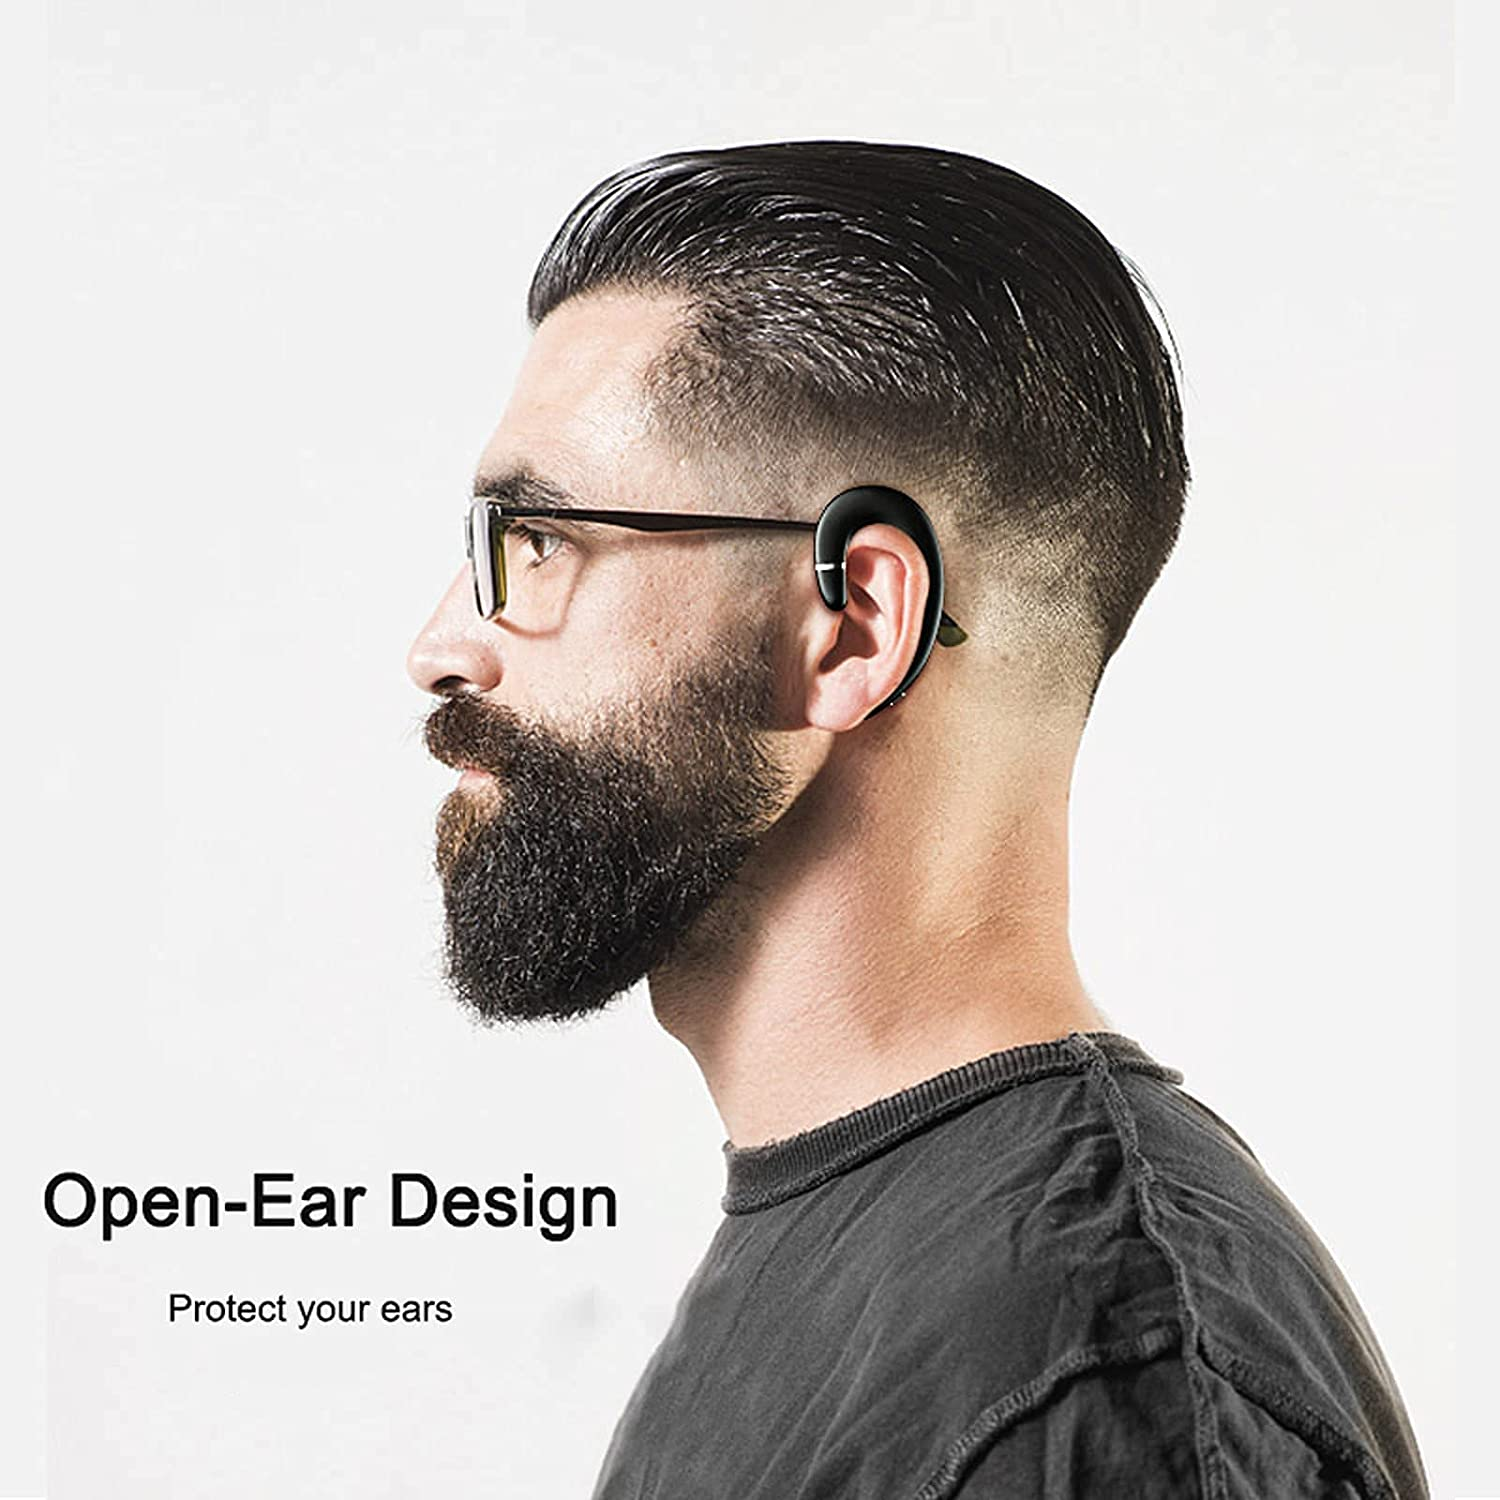 Air Conduction Headphones Wireless Swimming IPX5 Waterproof Bluetooth Open Ear Headphones with Microphone Workout Running Sport Gym